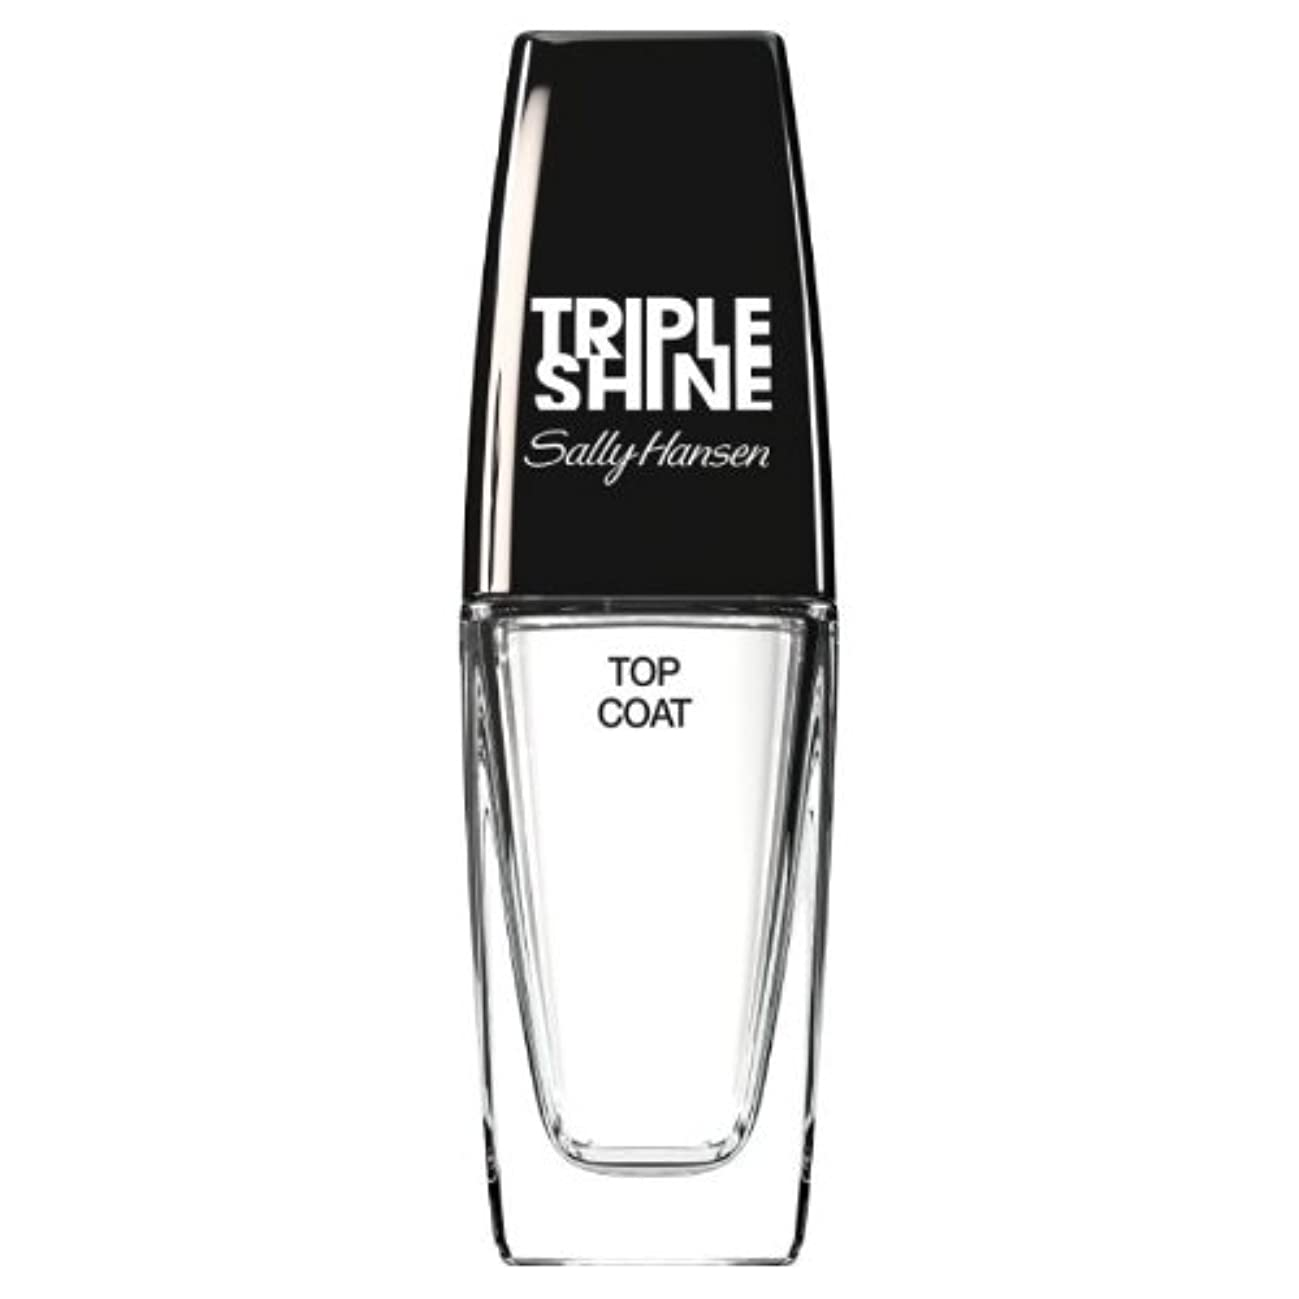 拡散する加速度全国(6 Pack) SALLY HANSEN Triple Shine Top Coat - Triple Shine Top Coat (並行輸入品)